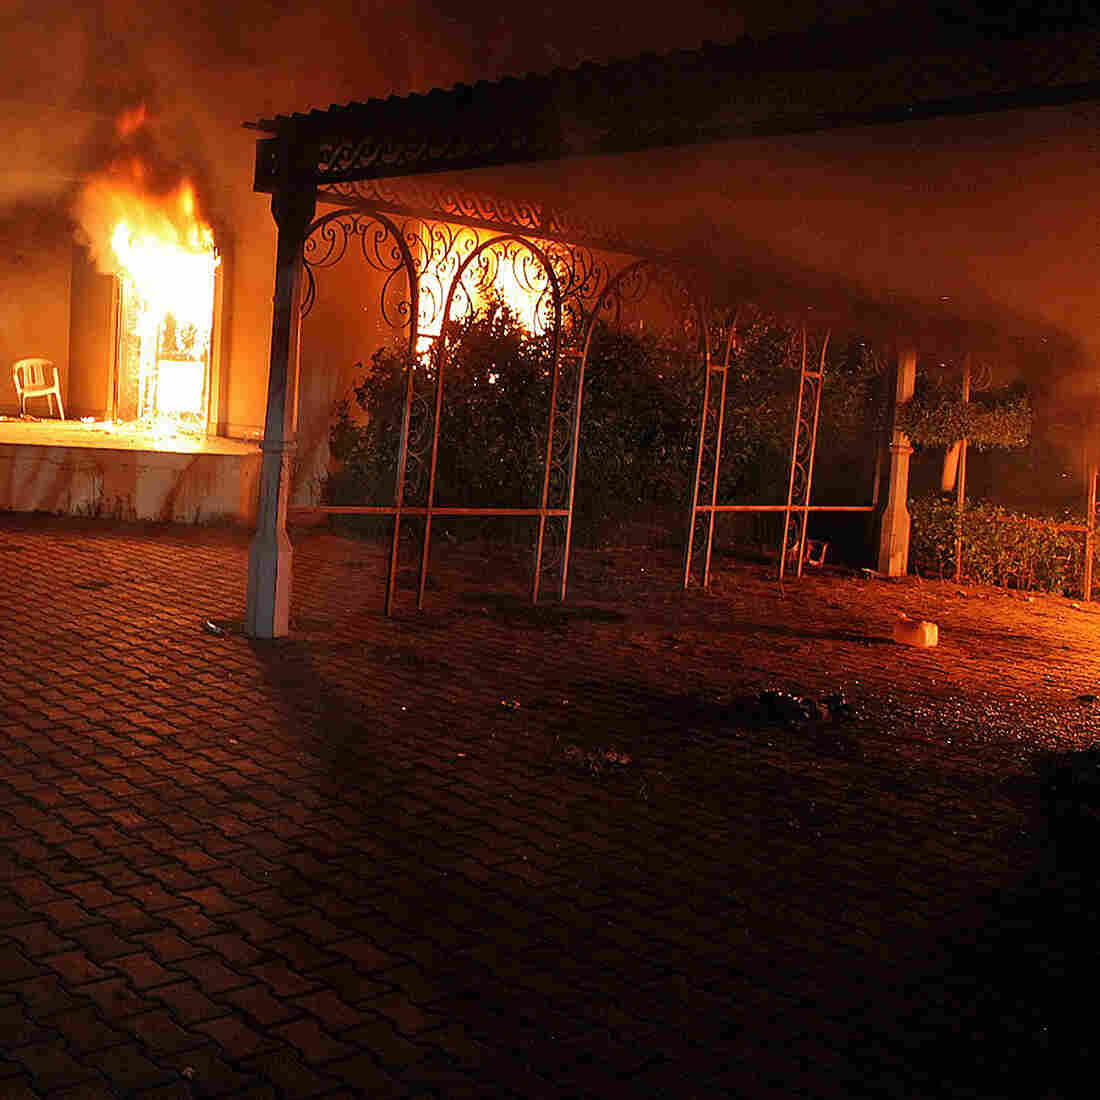 Petraeus Supports White House On Post-Benghazi Accounts, Lawmakers Say